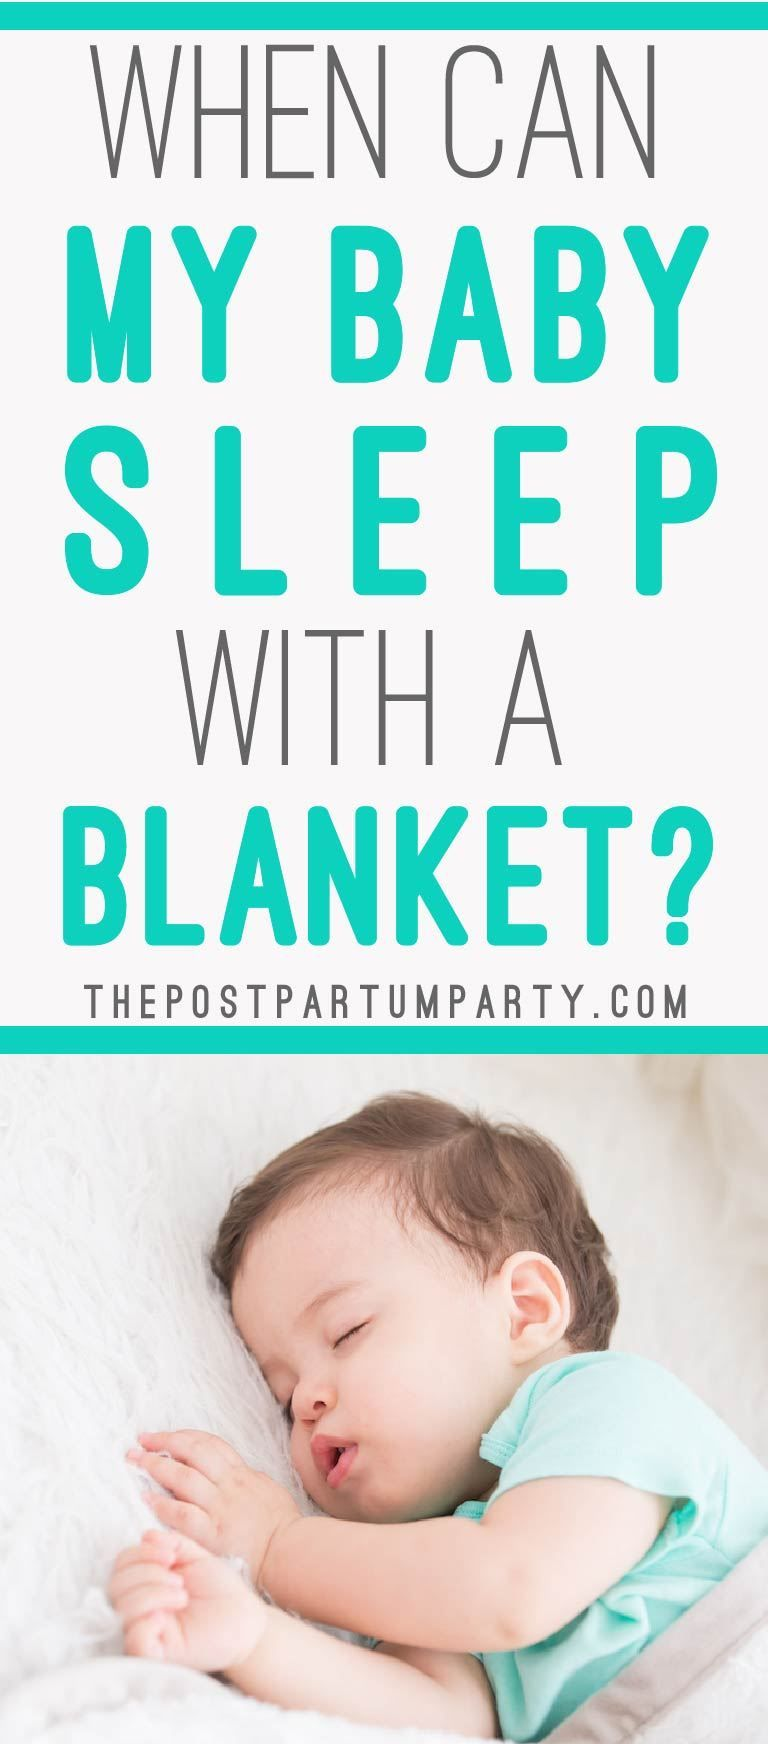 Wondering when your baby can sleep with a blanket? Find ...